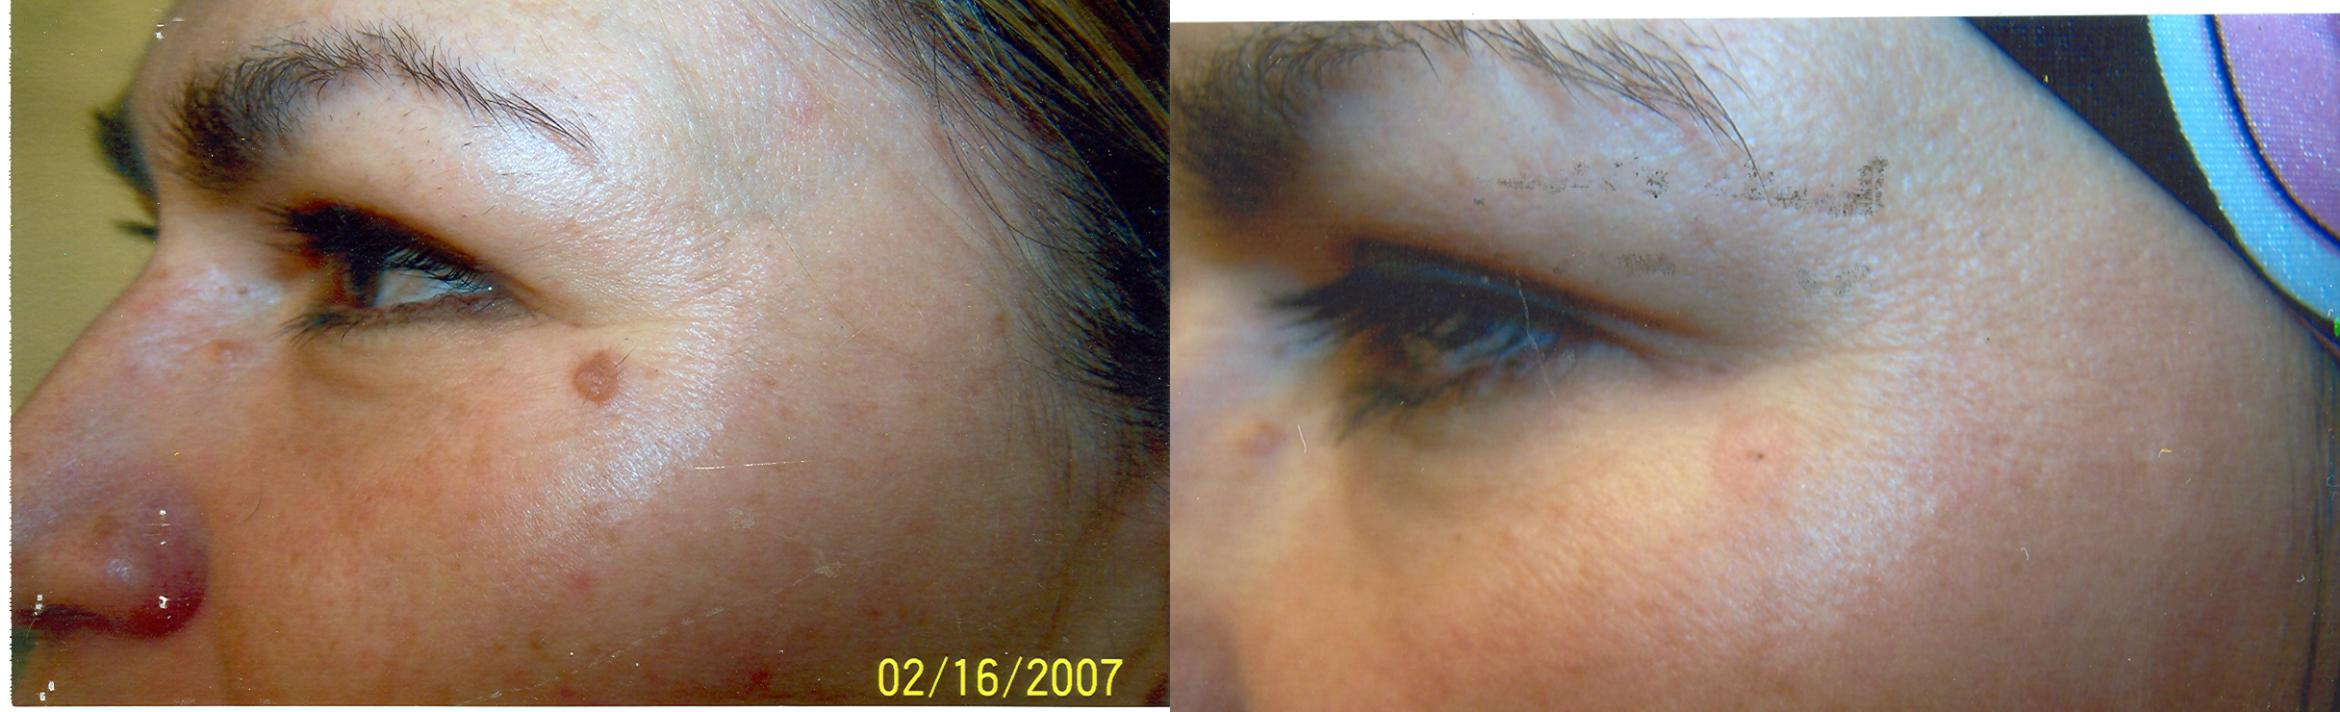 Cosmetic Removal of Moles & Skin Tags Before & After Photo | San Francisco, CA | Kaiser Permanente Cosmetic Services